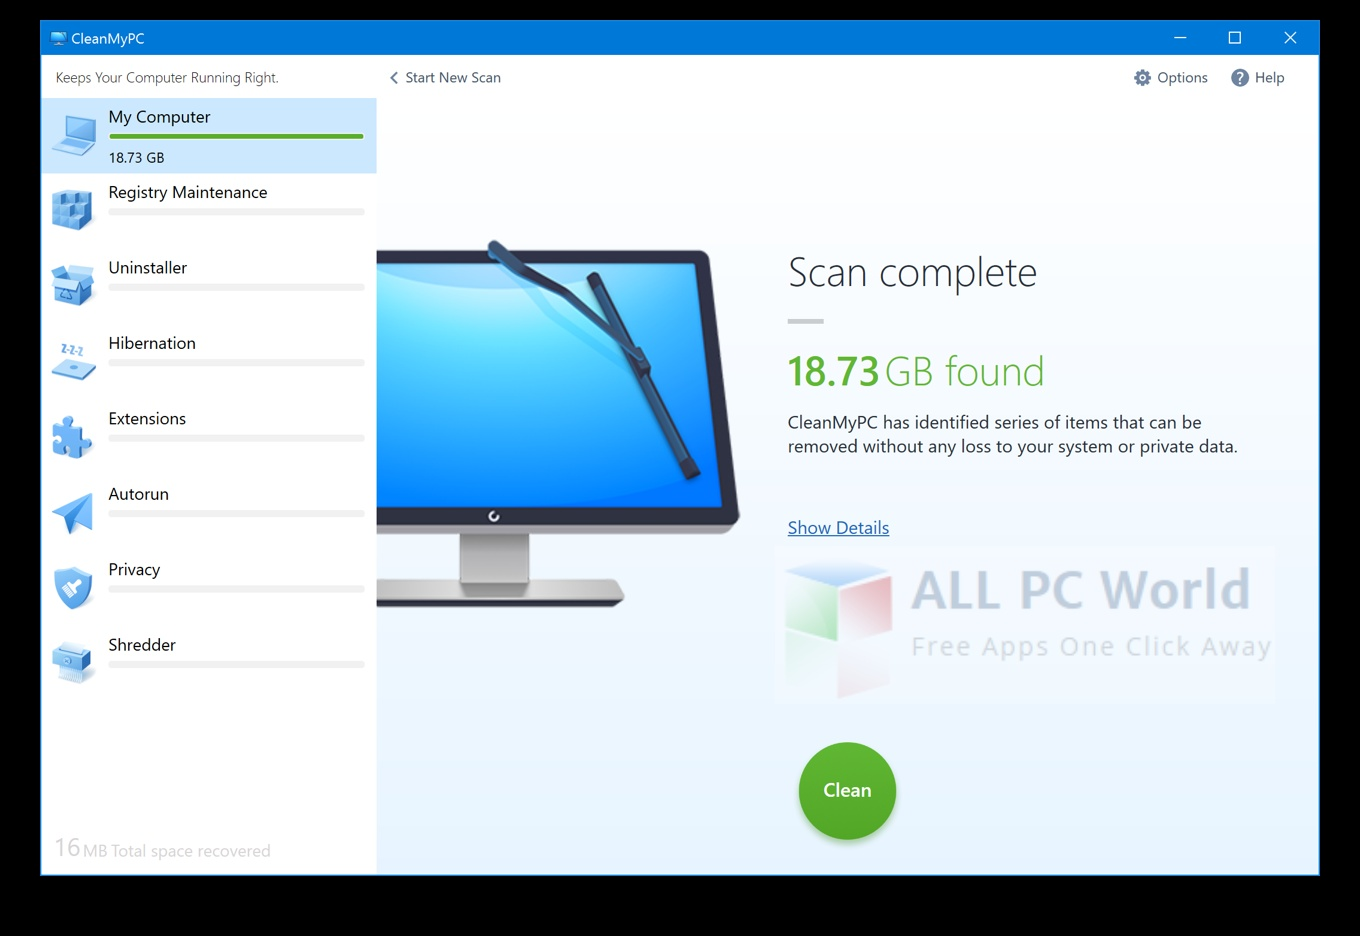 MacPaw CleanMyPC 1.8.6.893 Review